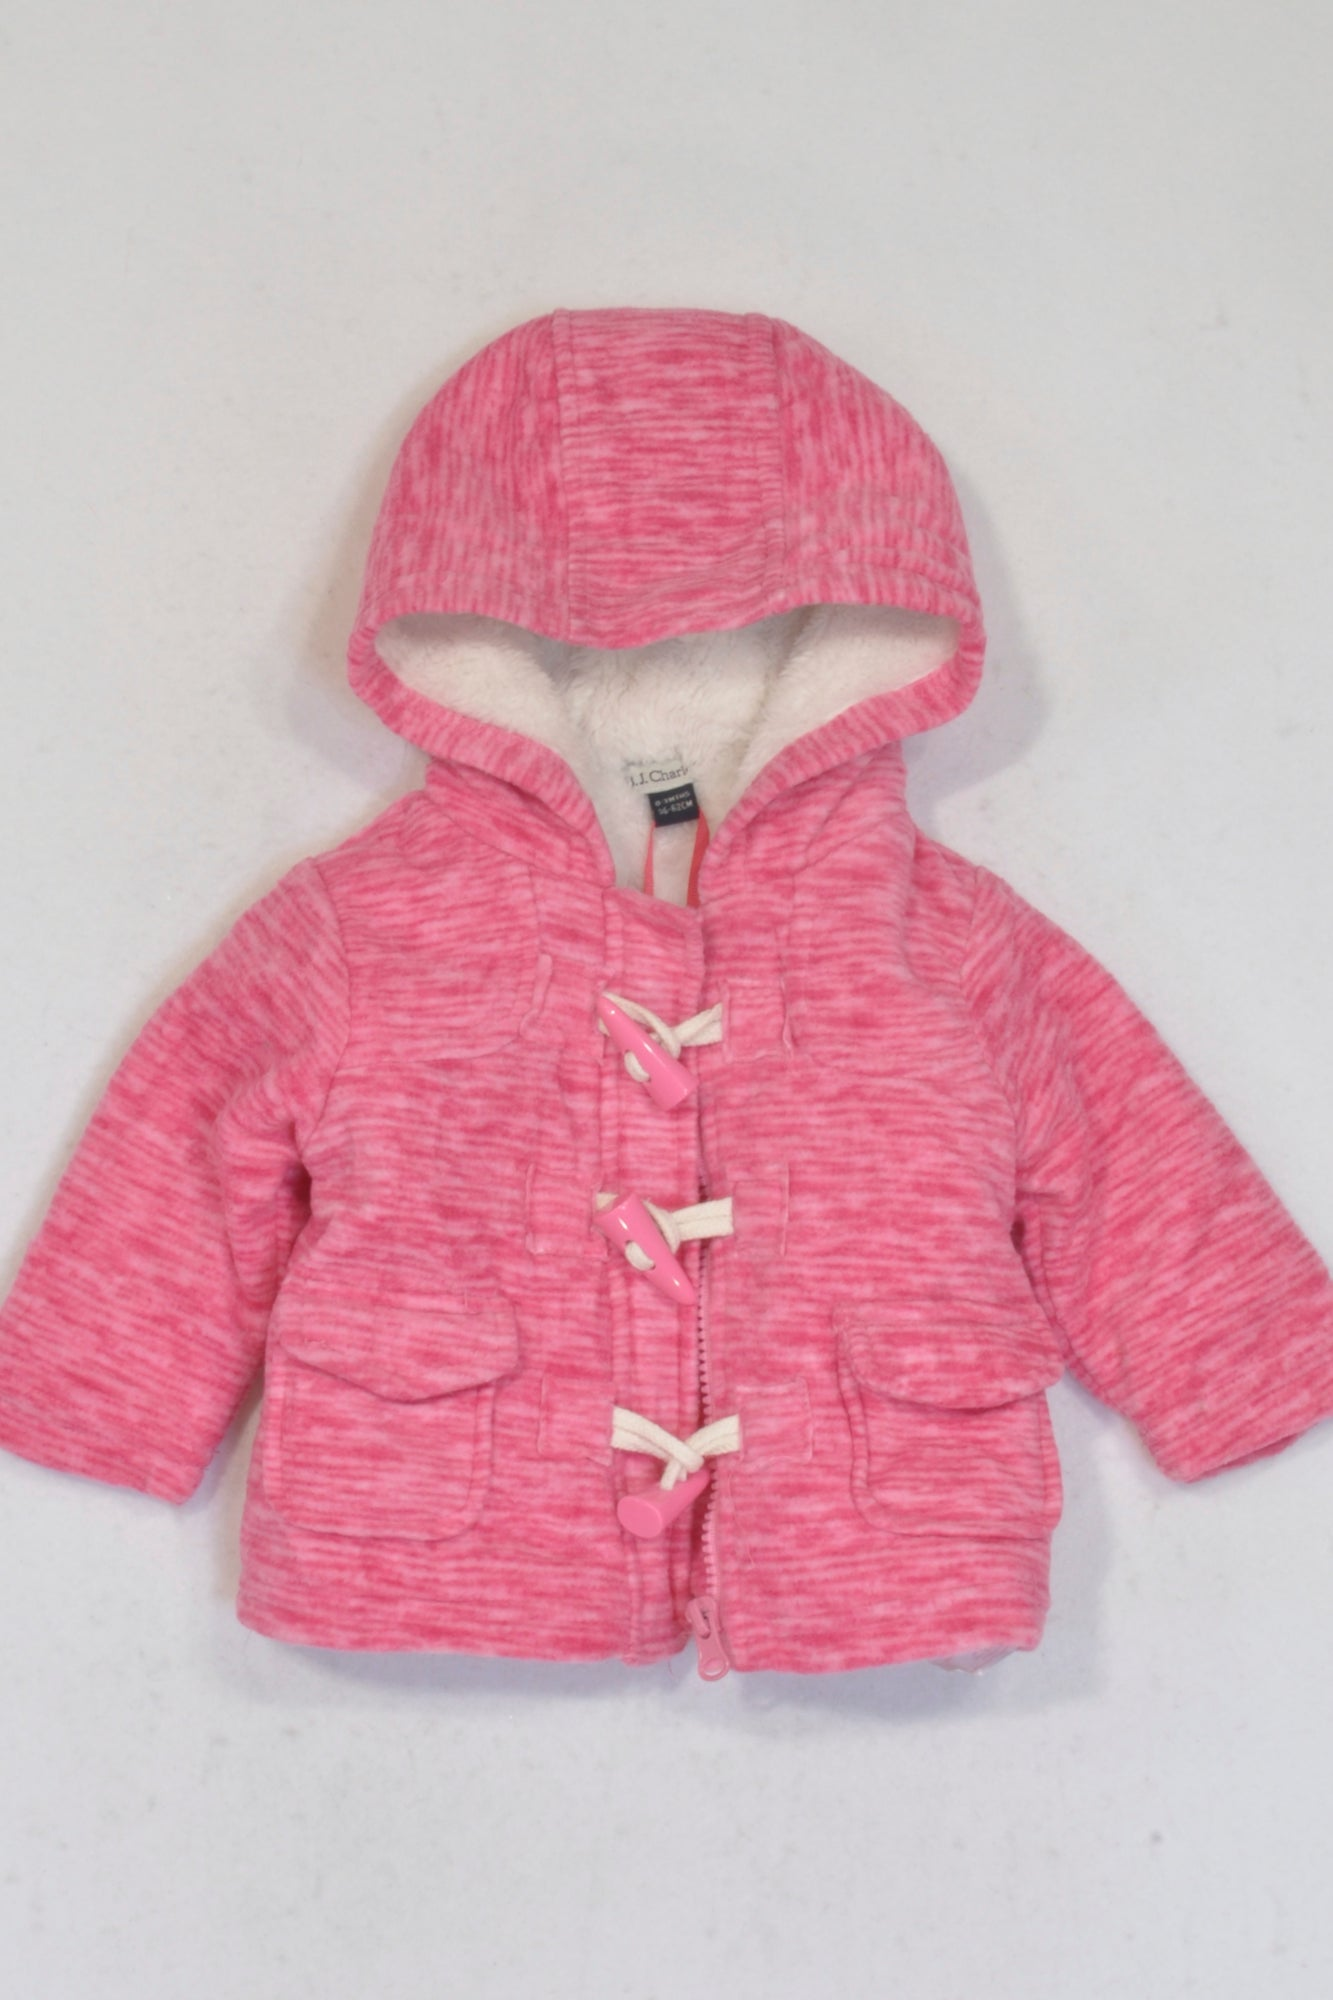 New B.J. Charles Pink Faux Fur & Fleece Hooded Toggle Coat Girls 0-3 months